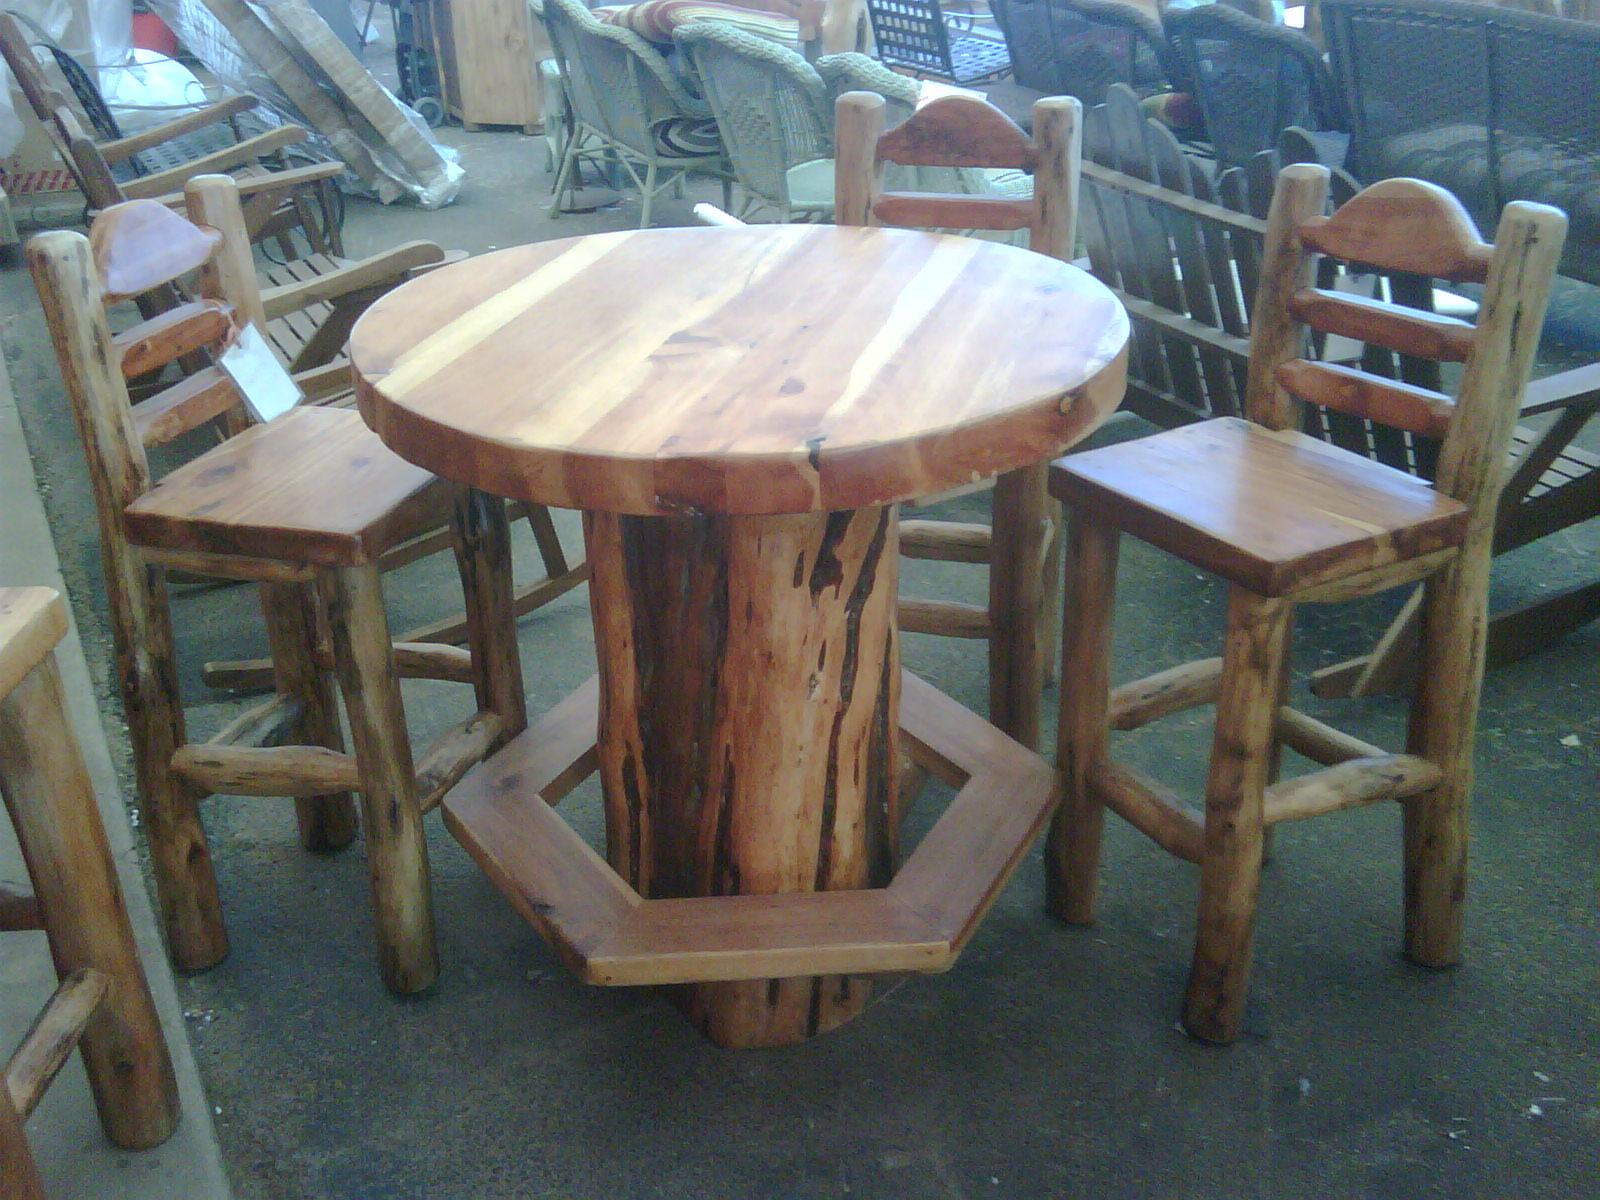 Chihuahua Rustic Furniture